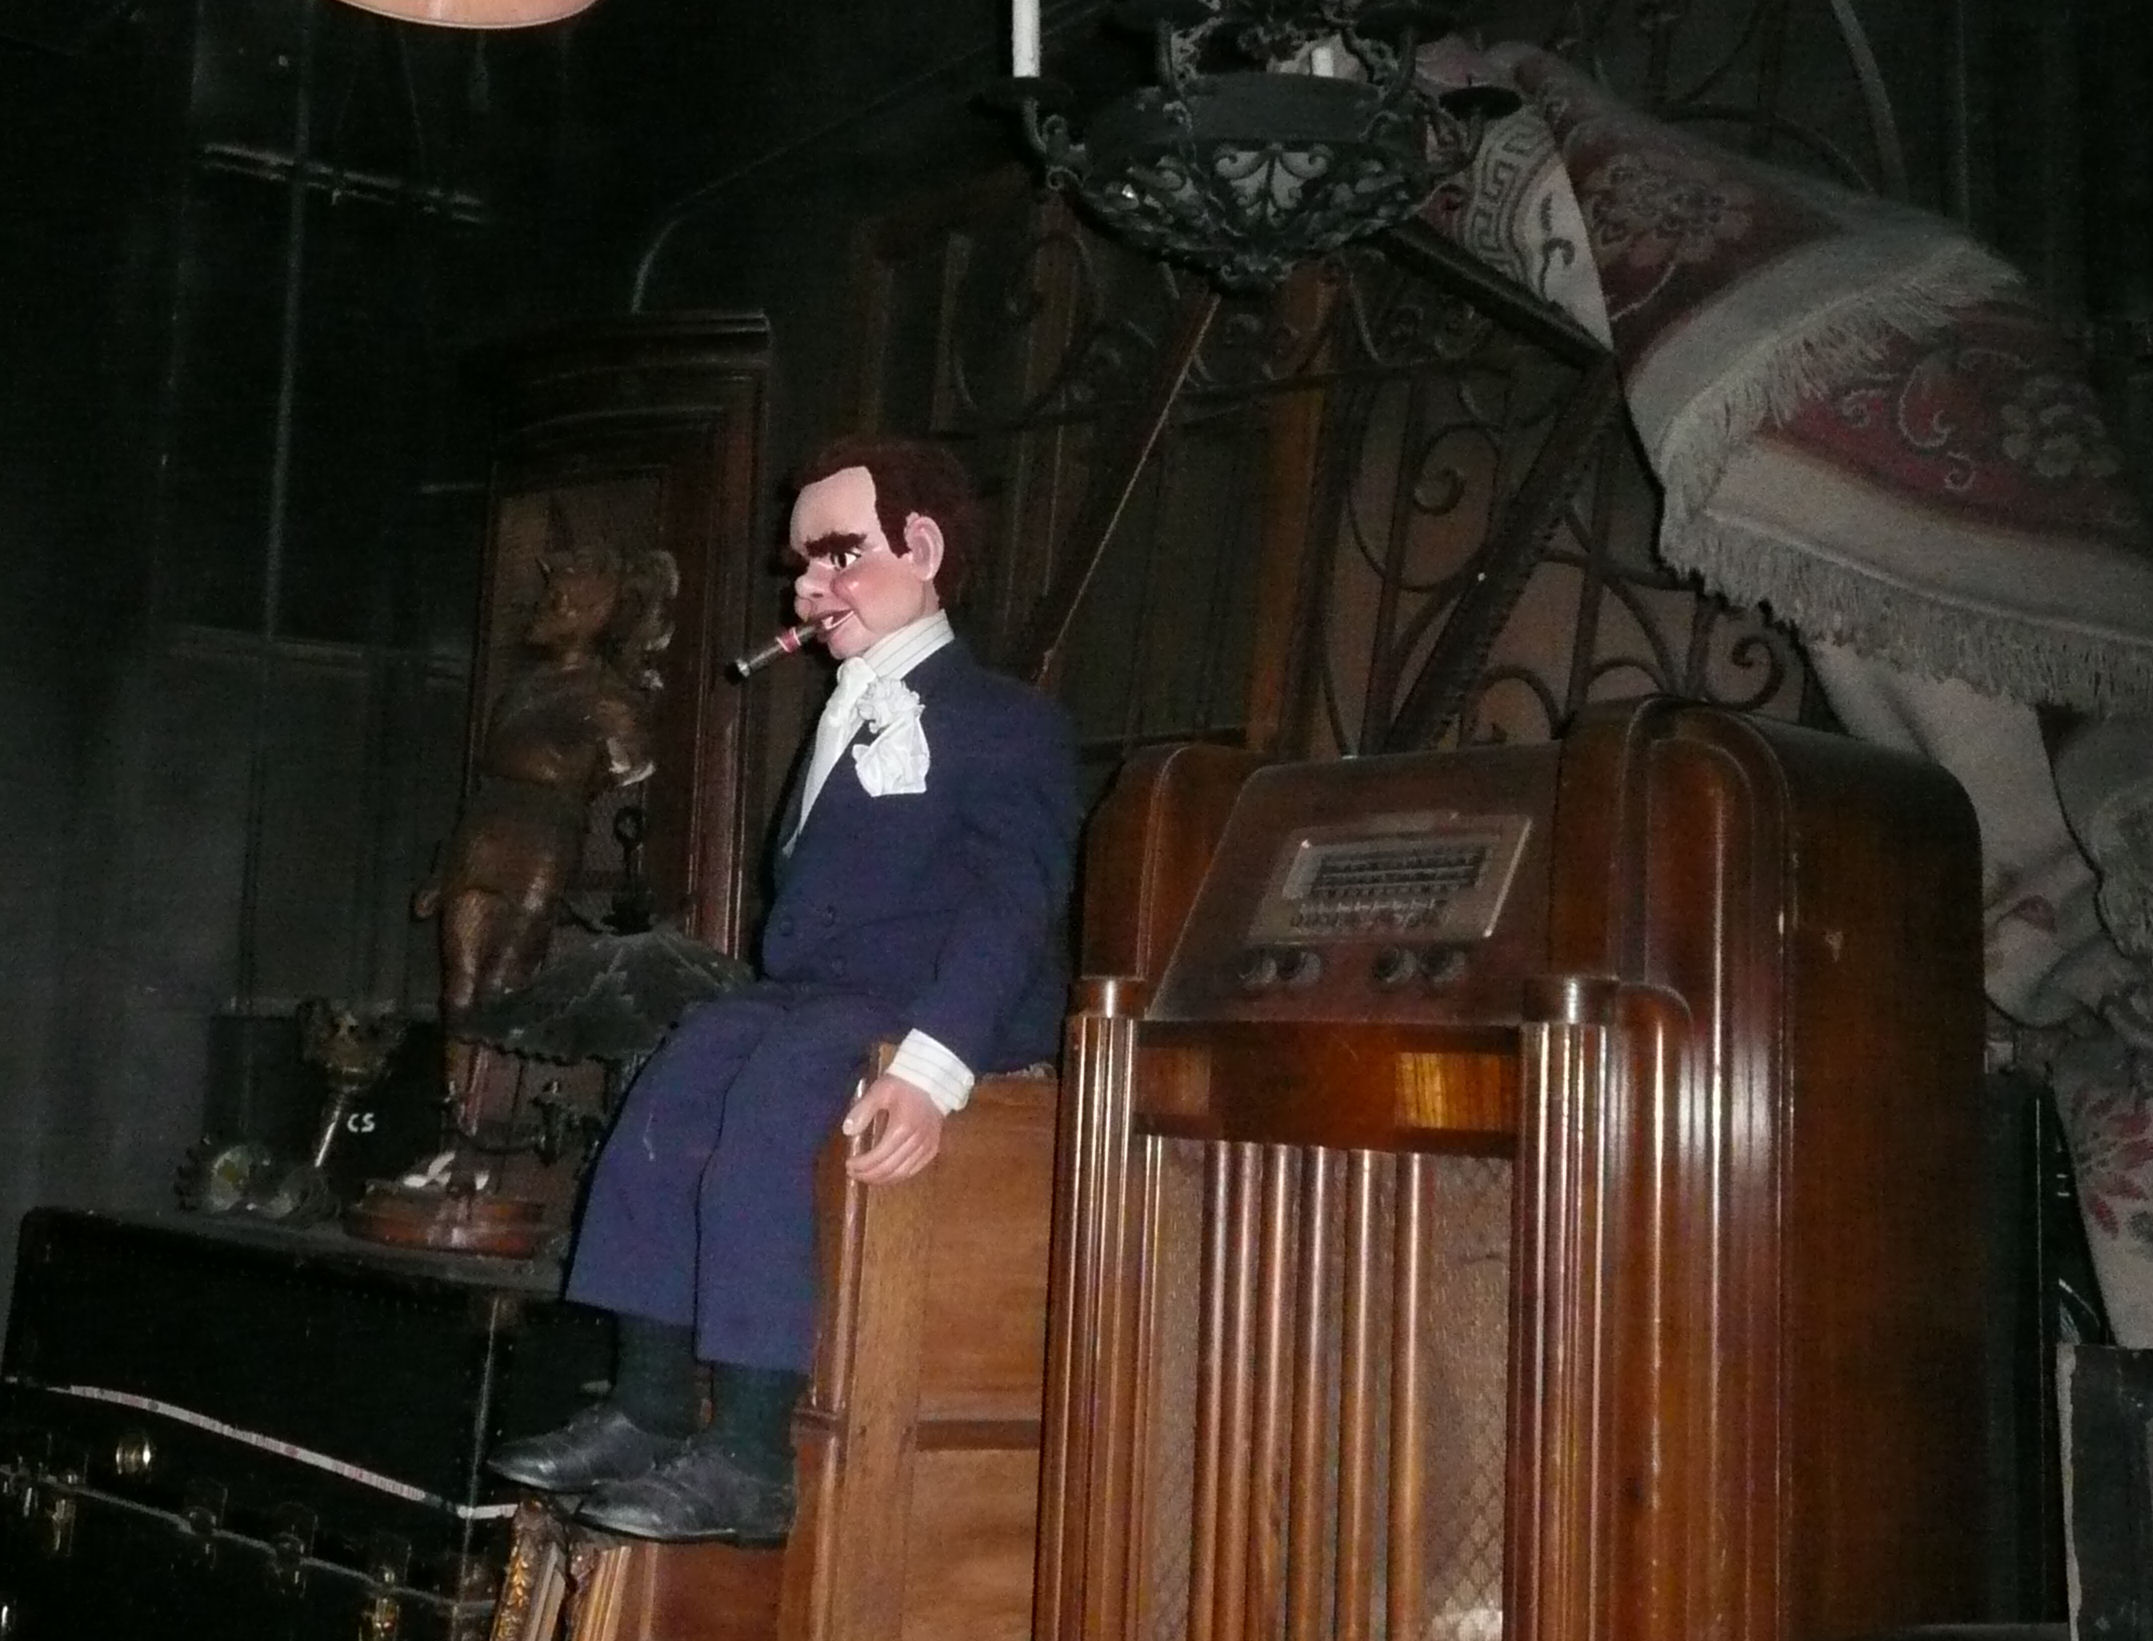 Props in the basement in the Twilight Zone Tower of Terror at Disney's Hollywood Studios; ventriloquist dummy is from an actual episode of <i>The Twilight Zone</i> television show.